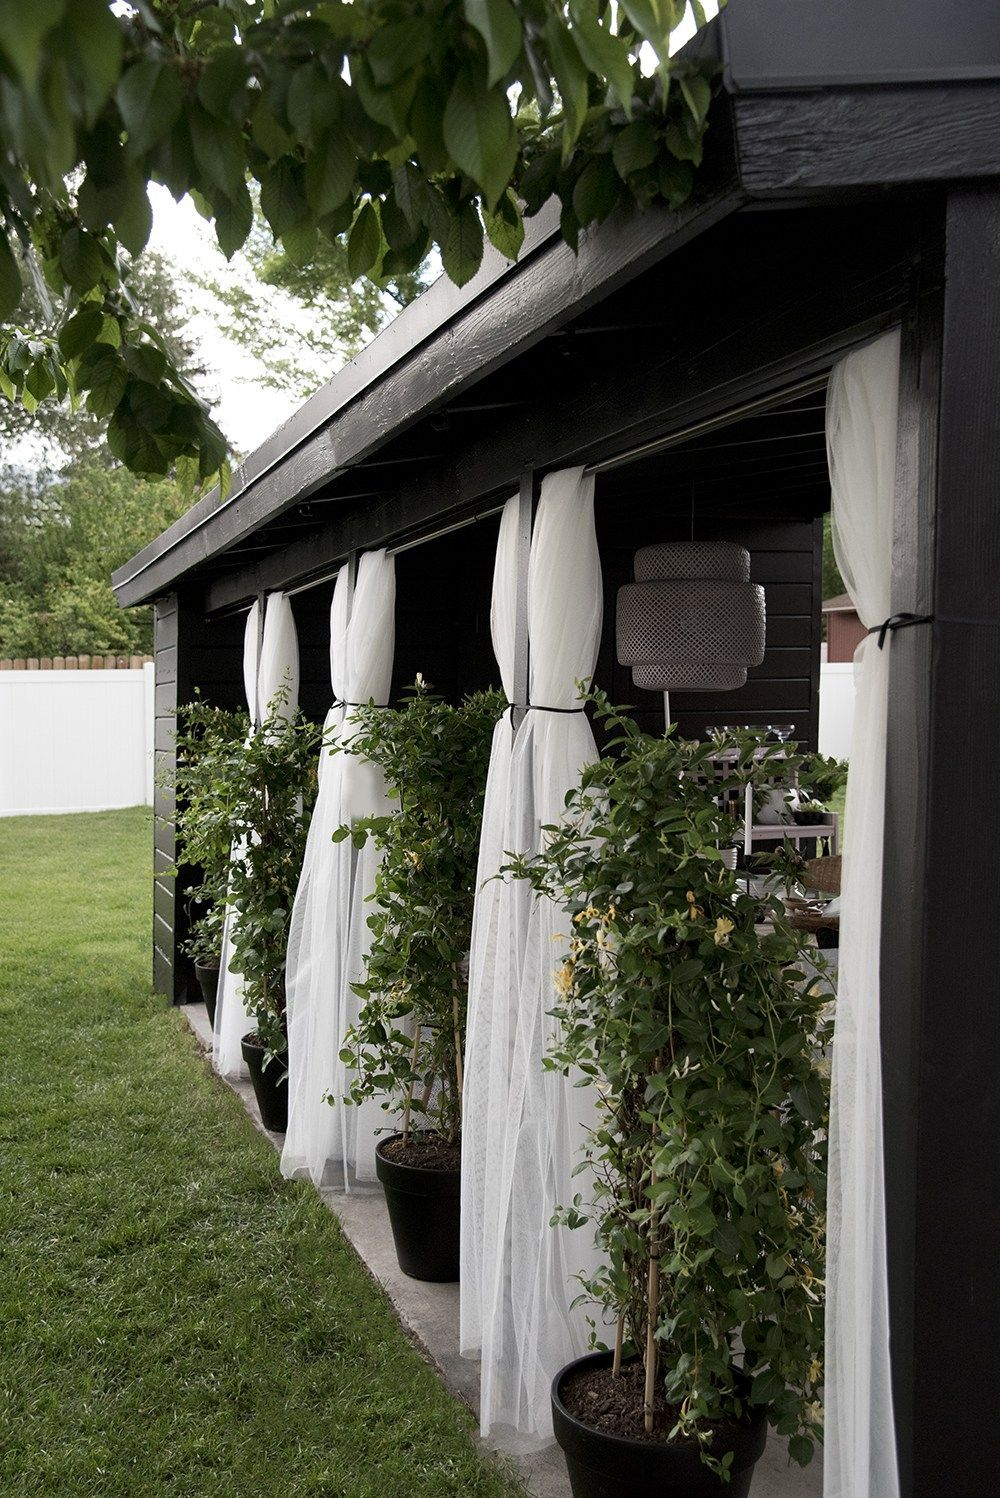 Carport Makeover Outdoor Sheer Curtains Potted Honeysuckle And An Intimate Dining Area Carport Makeover Carport Patio Outdoor Curtains